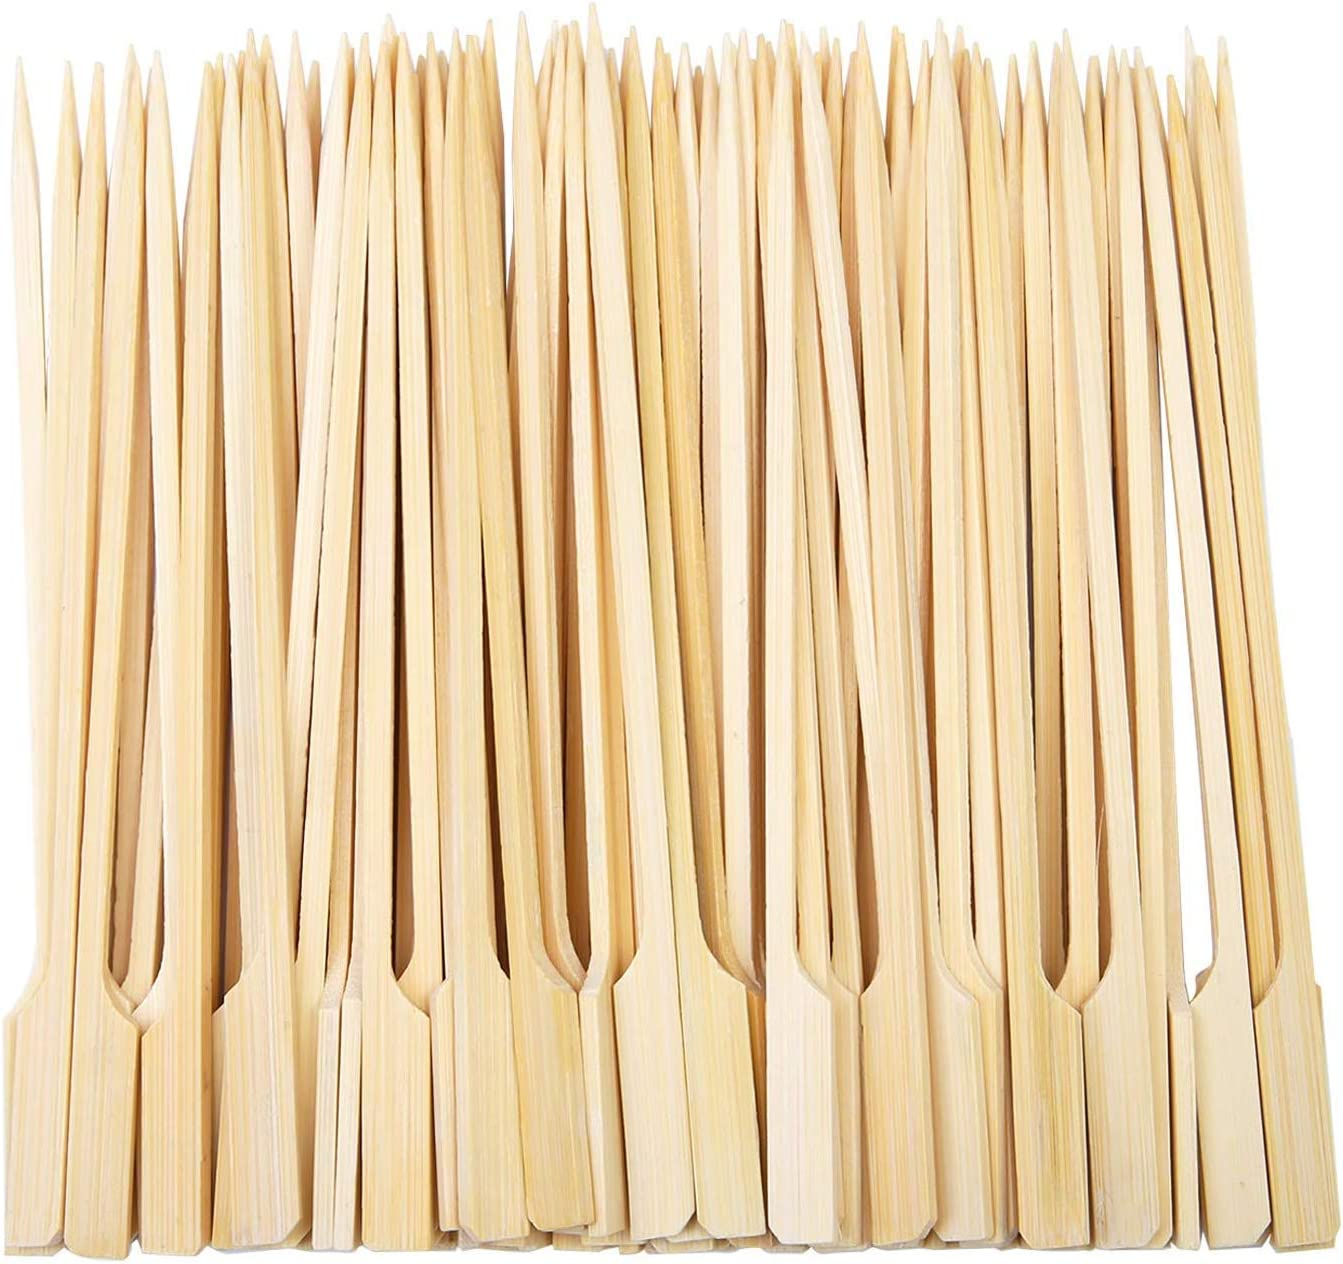 9cm Buffets Party Kitchencookshop Paddle Skewers100 Pieces Bamboo Barbecue Bamboo Skewers Cocktail Sticks for Barbeque Cocktails Burgers Kebabs